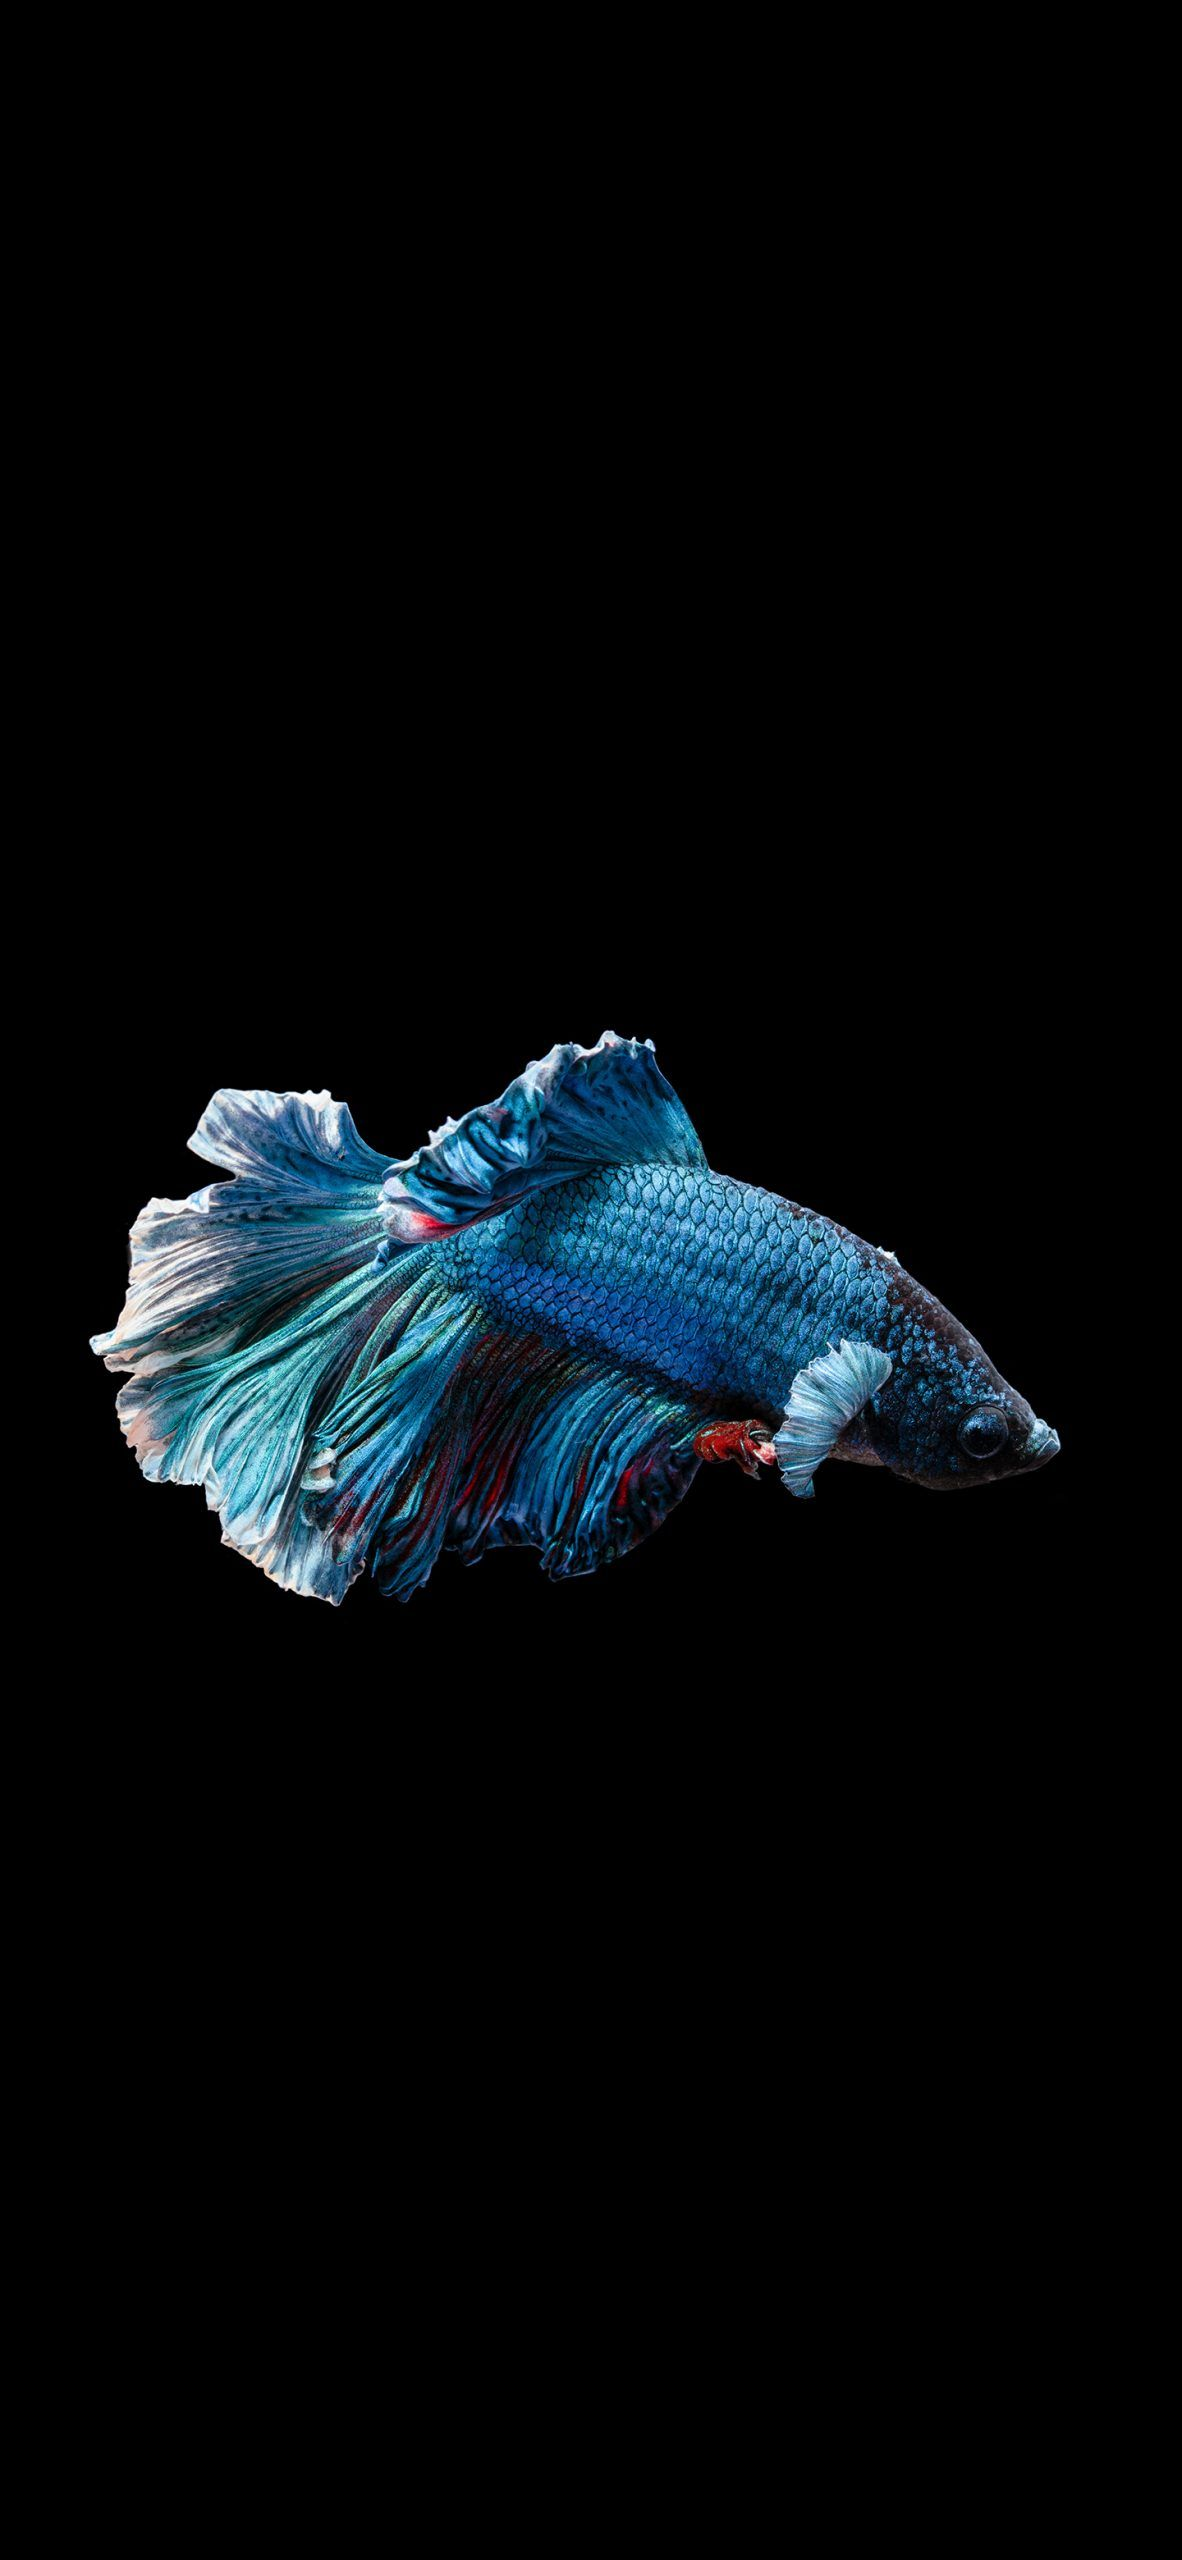 Betta fish at night Amoled Wallpaper Animal wallpaper